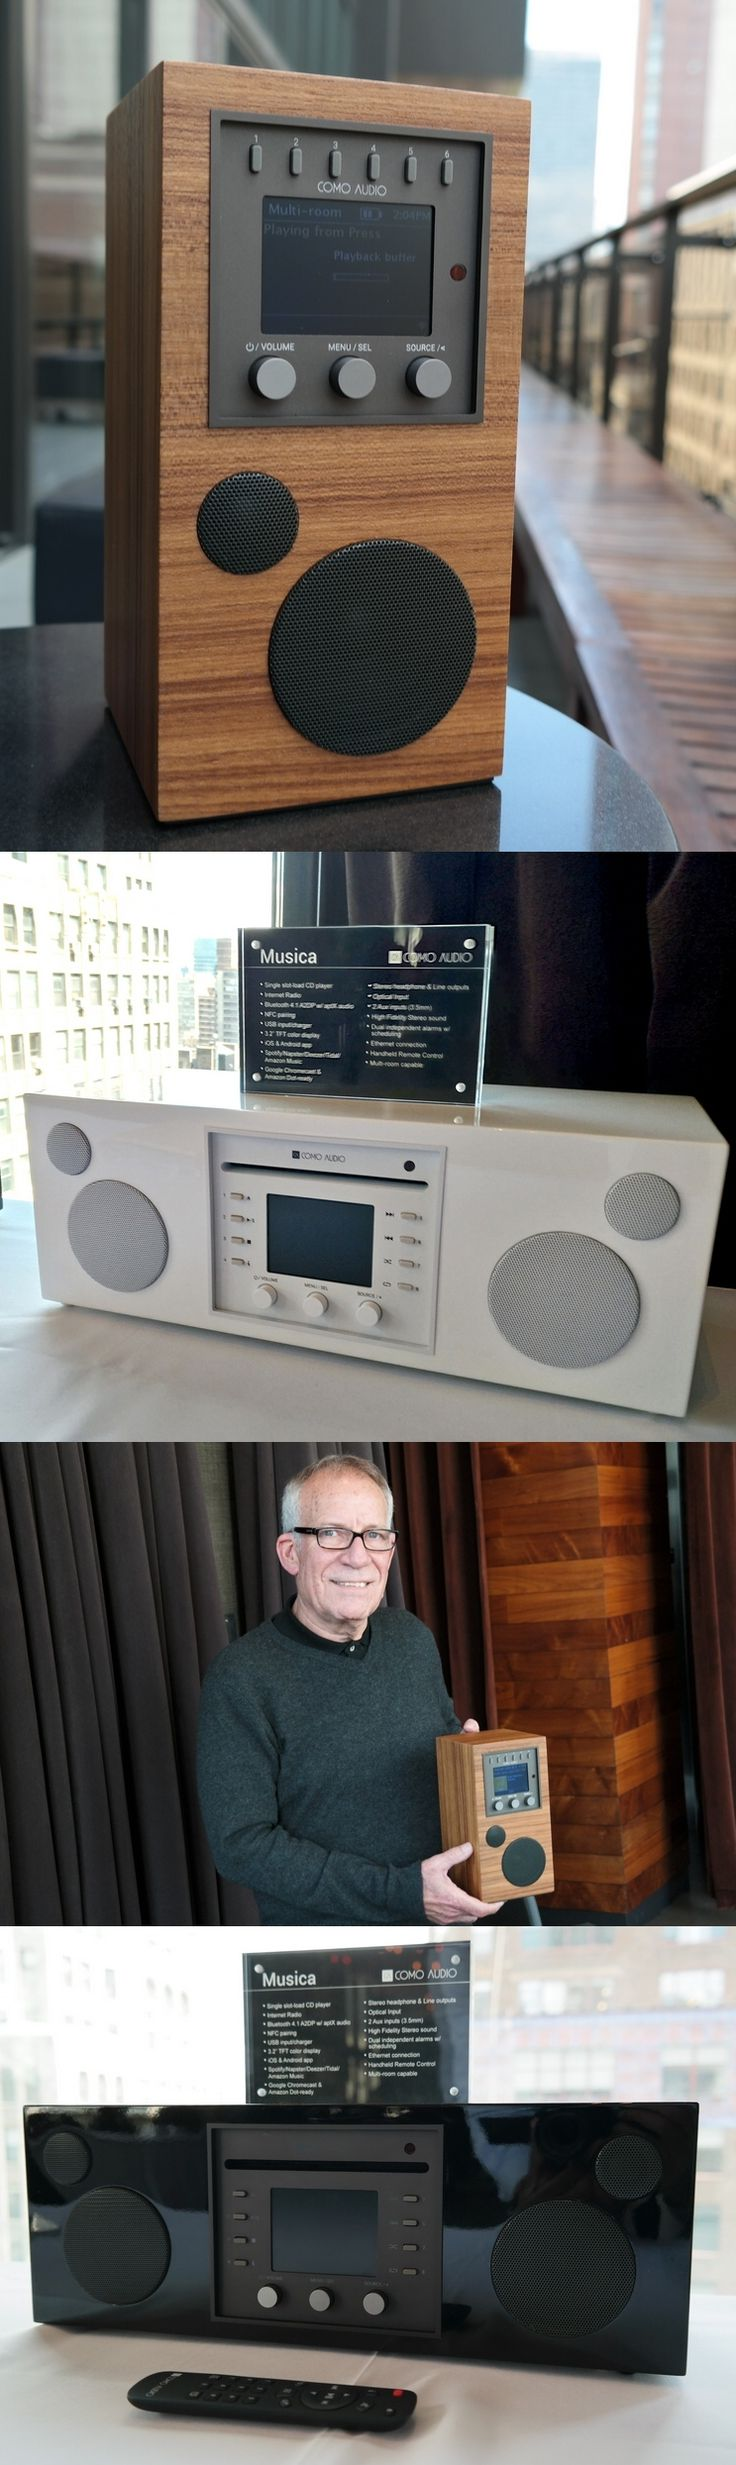 Como Audio hits the road (or your den) with the new Amico, a battery-powered high-fidelity, portable multi-room music system with FM, Internet radio, Wi-Fi and Bluetooth connectivity and built-in music streaming services. CEO Tom DeVesto said the $399 Amico runs 8 hours on a charge and can be controlled with an app, a remote or neither: It can be used with its knobs alone. The new @comoaudio Musica ($599-$649) basically adds a CD player to the dual-speaker Duetto introduced last year…